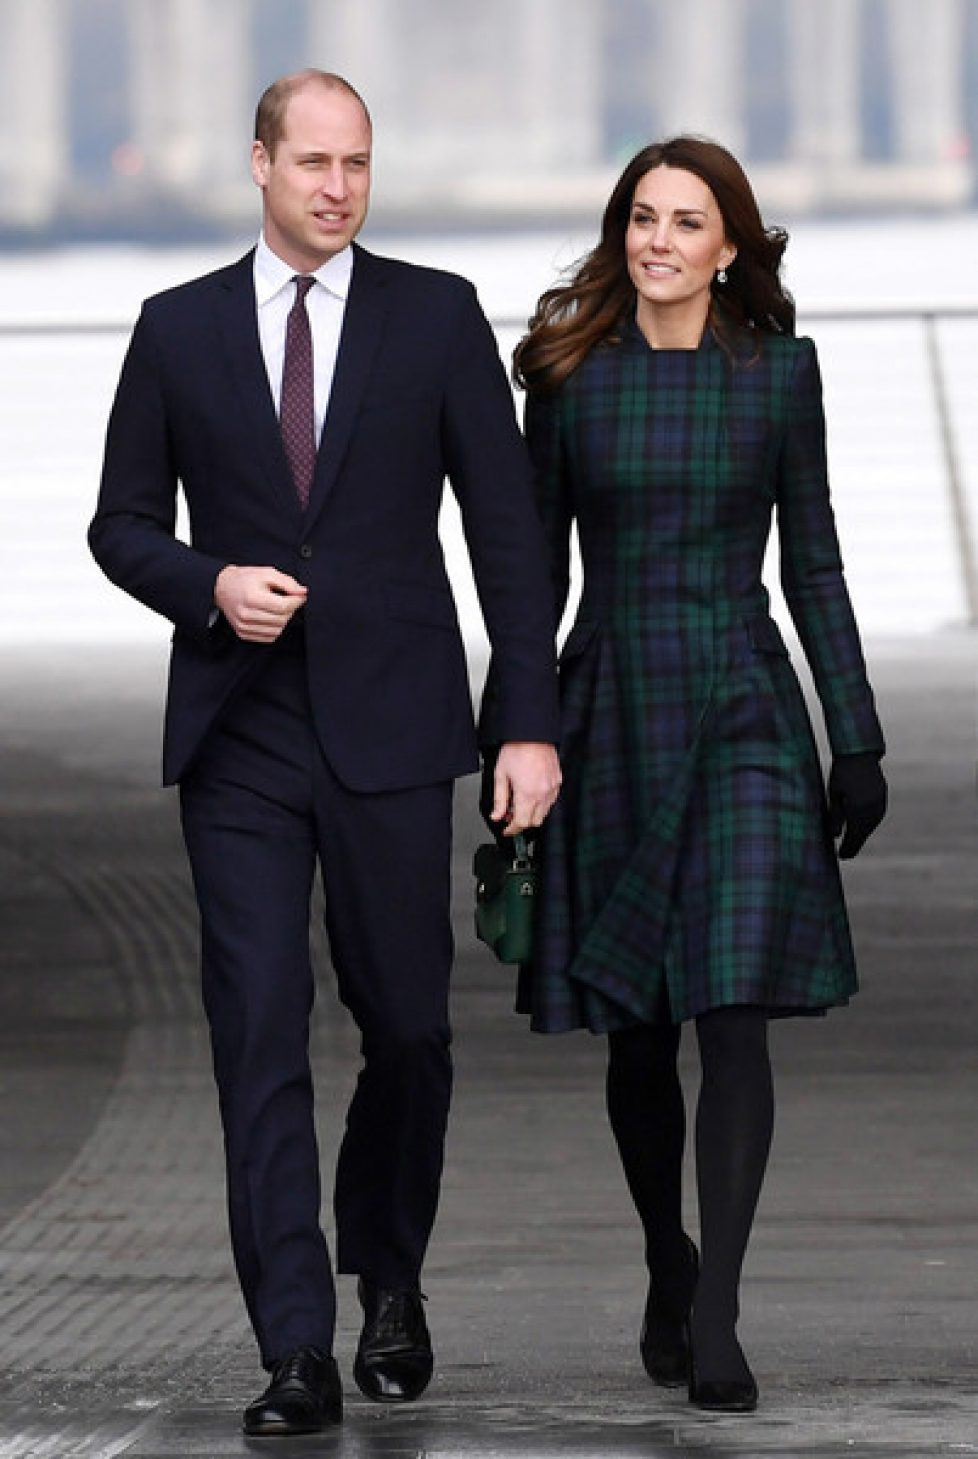 Duke+Duchess+Cambridge+Visit+Dundee+uSqaMxvkzeBl